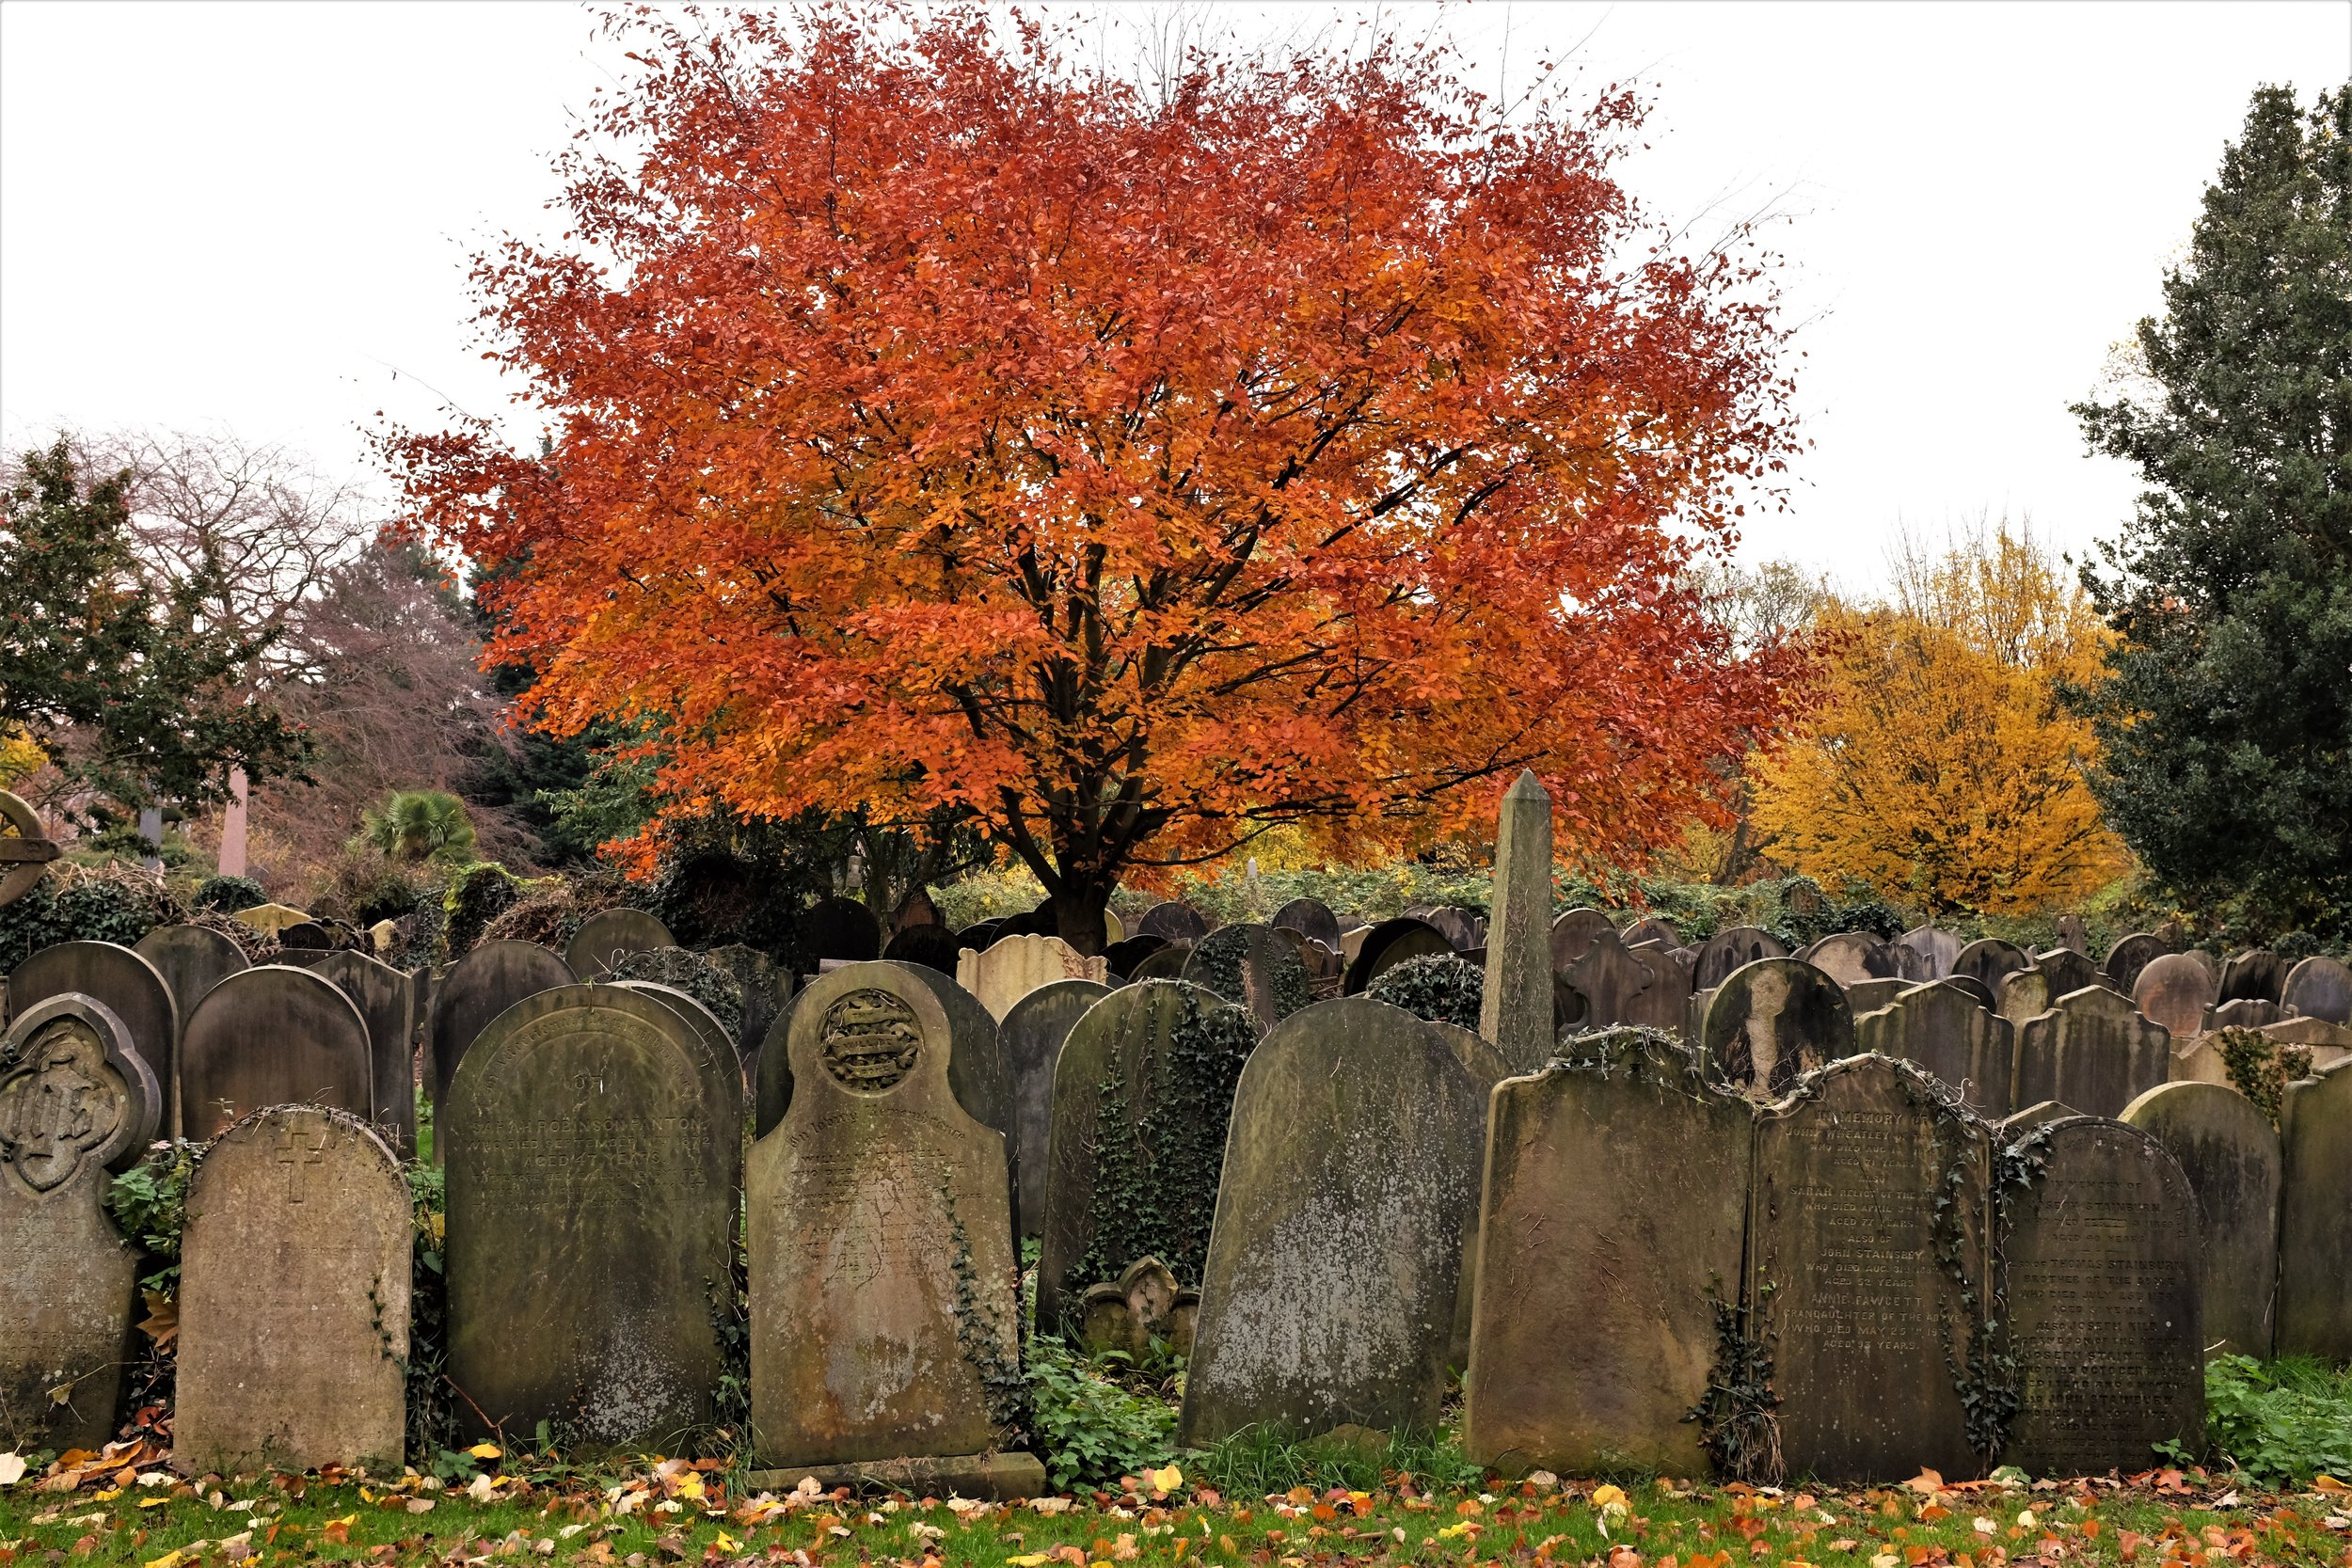 Can Cemeteries Be a Tool for Equity? - Writing